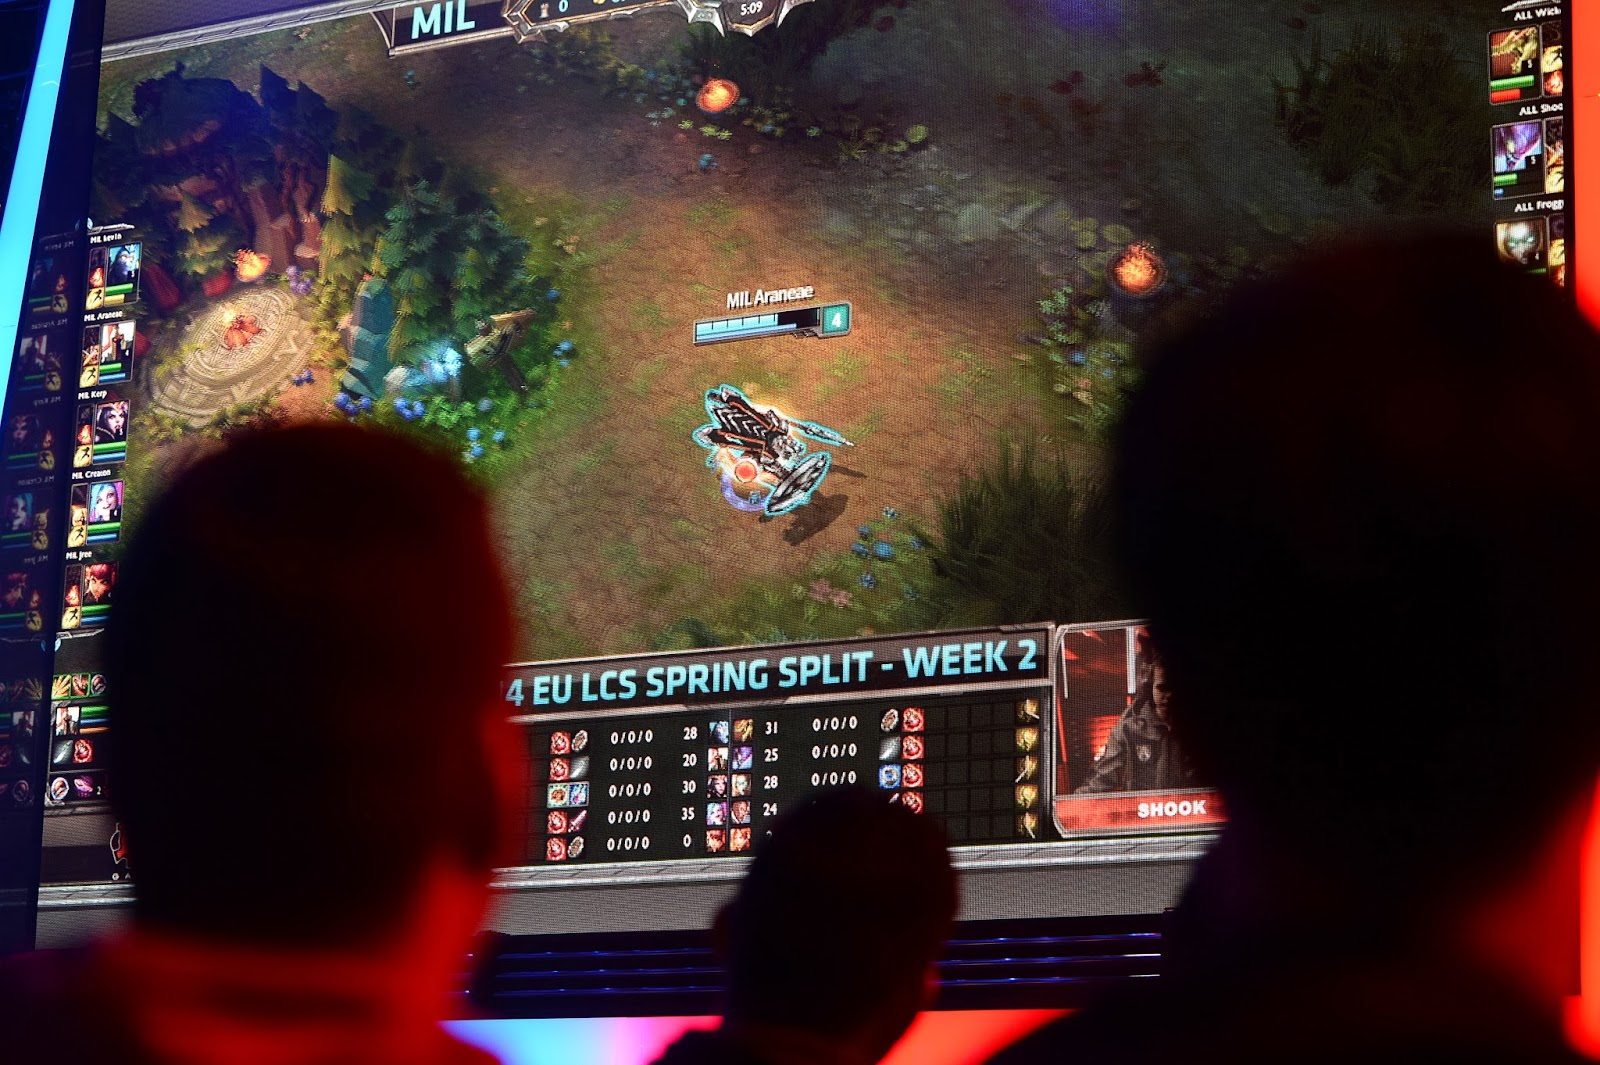 Championship, Cologne, Competition, Europe League Game, Game, Game Players, Germany, IT, League of Legends, Multiplayer Game, News, Online Game, Sports, Technology, Video Game,